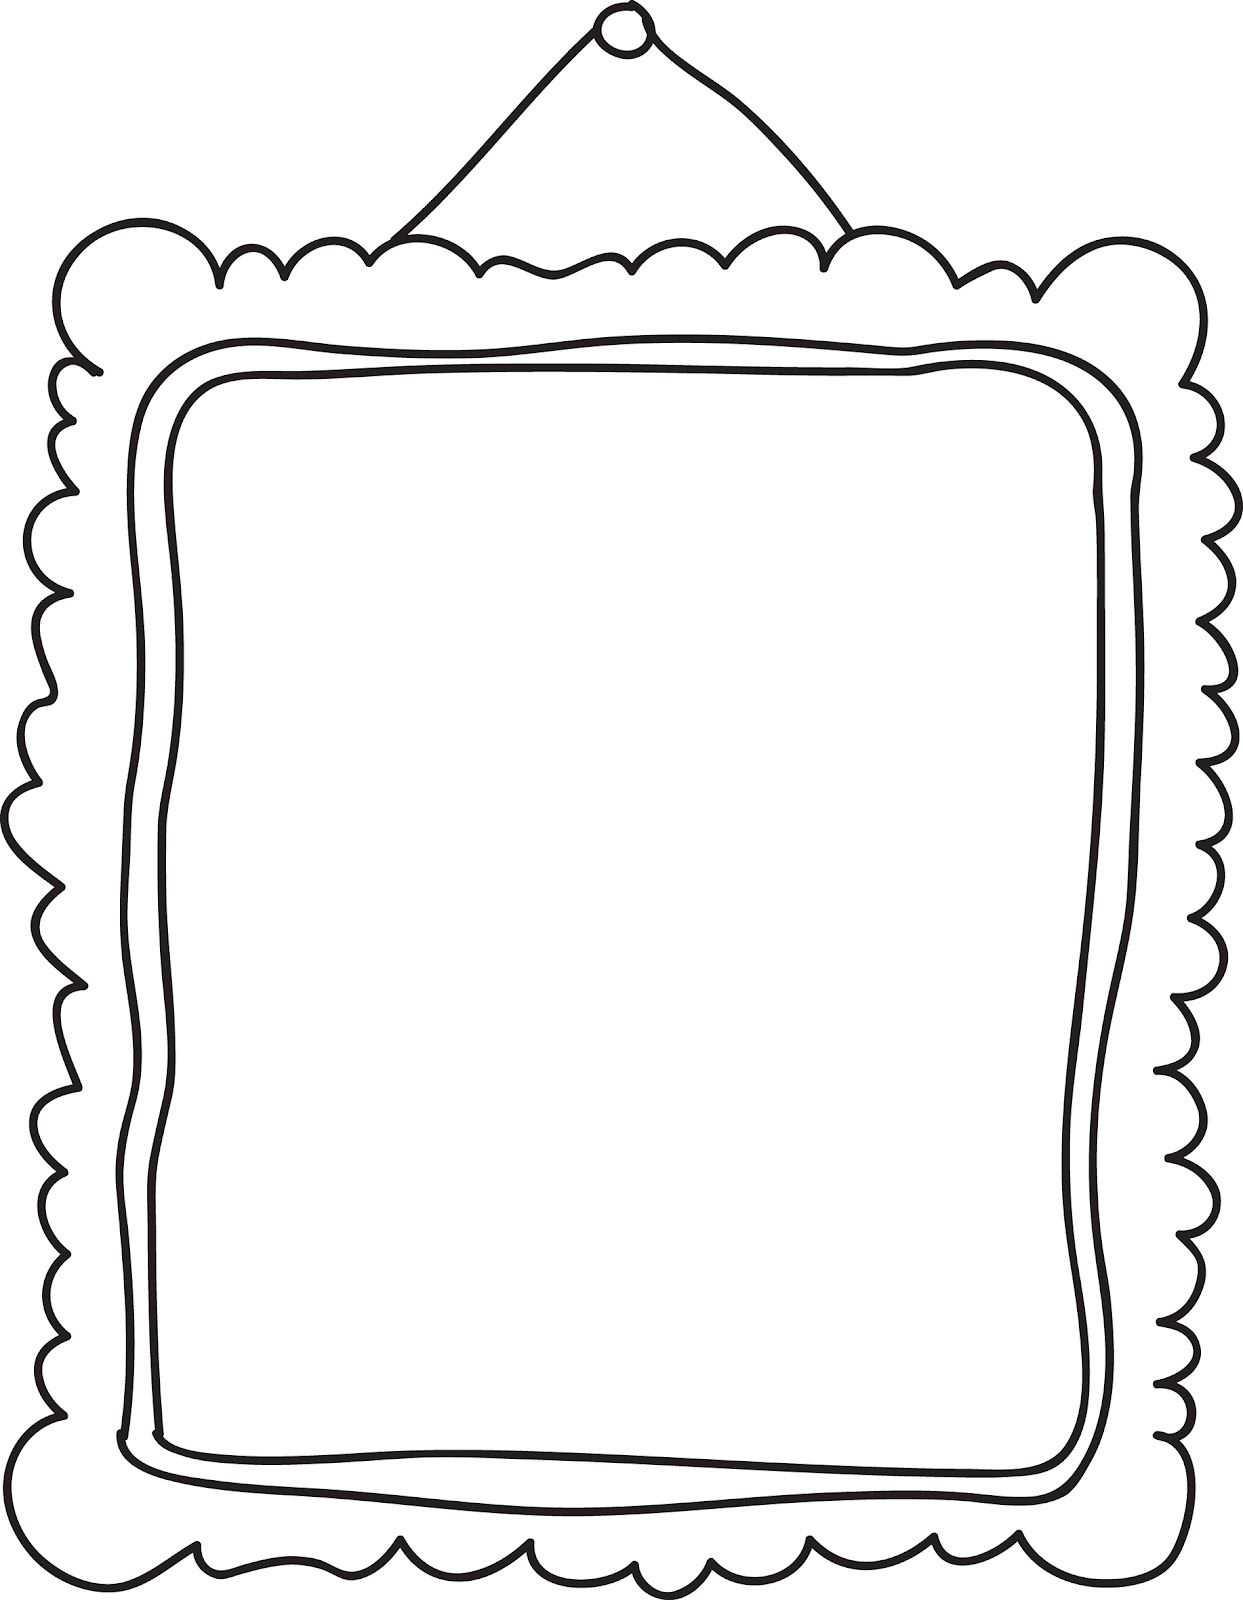 Digital Frames Vector Clipart Black And White Google Search